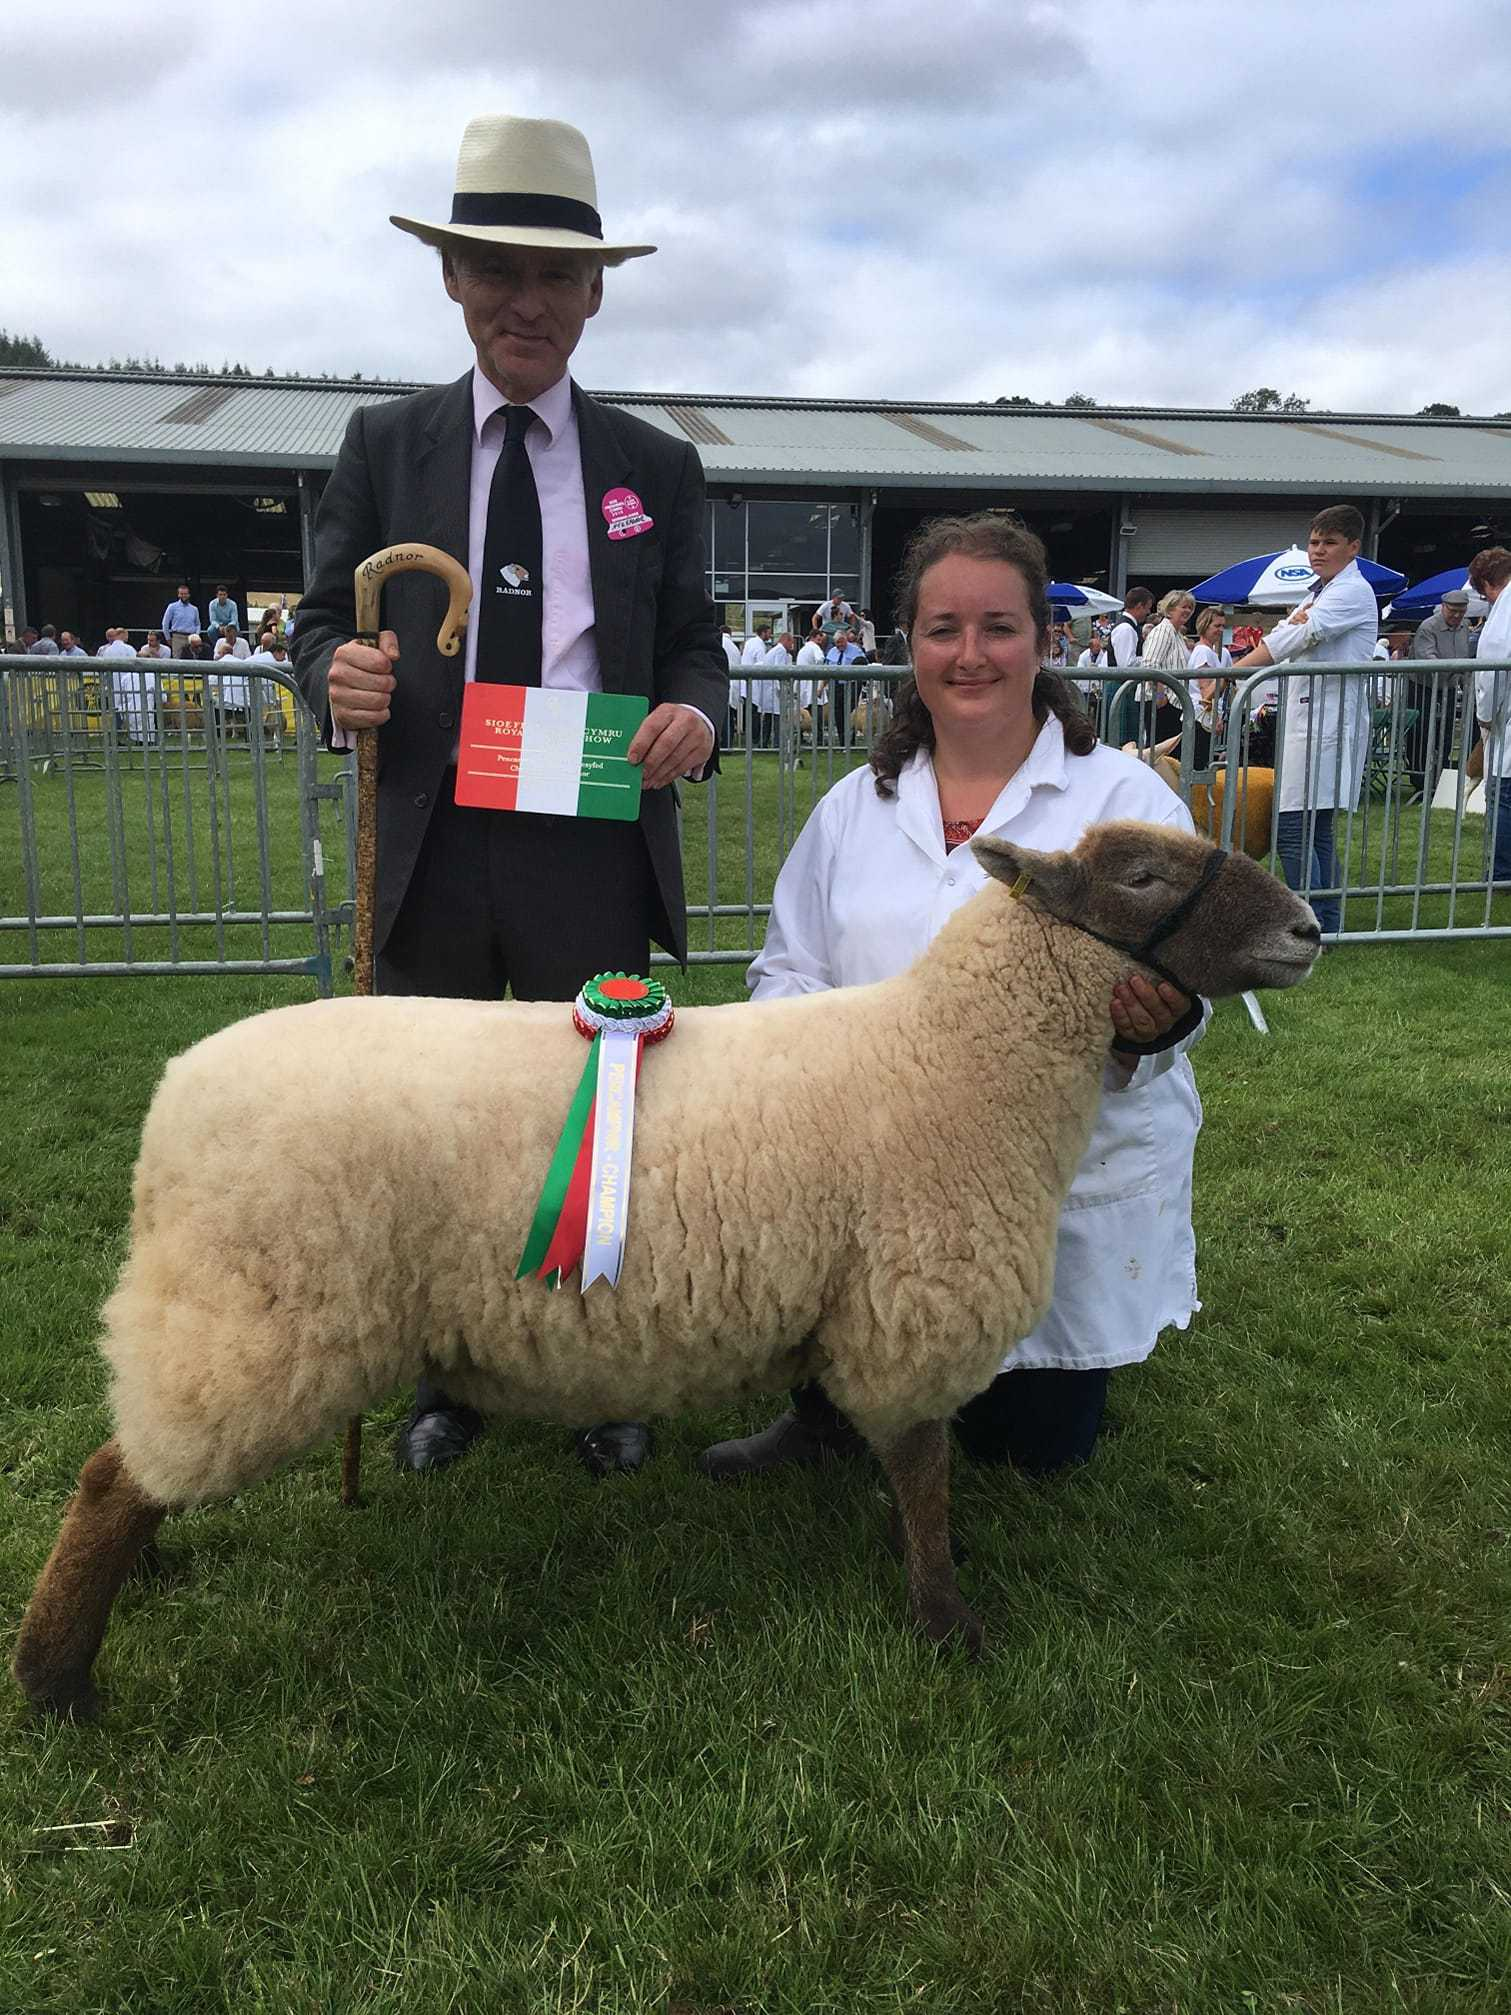 Katie Jones, 33, of Ellesmere, at the Royal Welsh Show with judge Neil Radnor